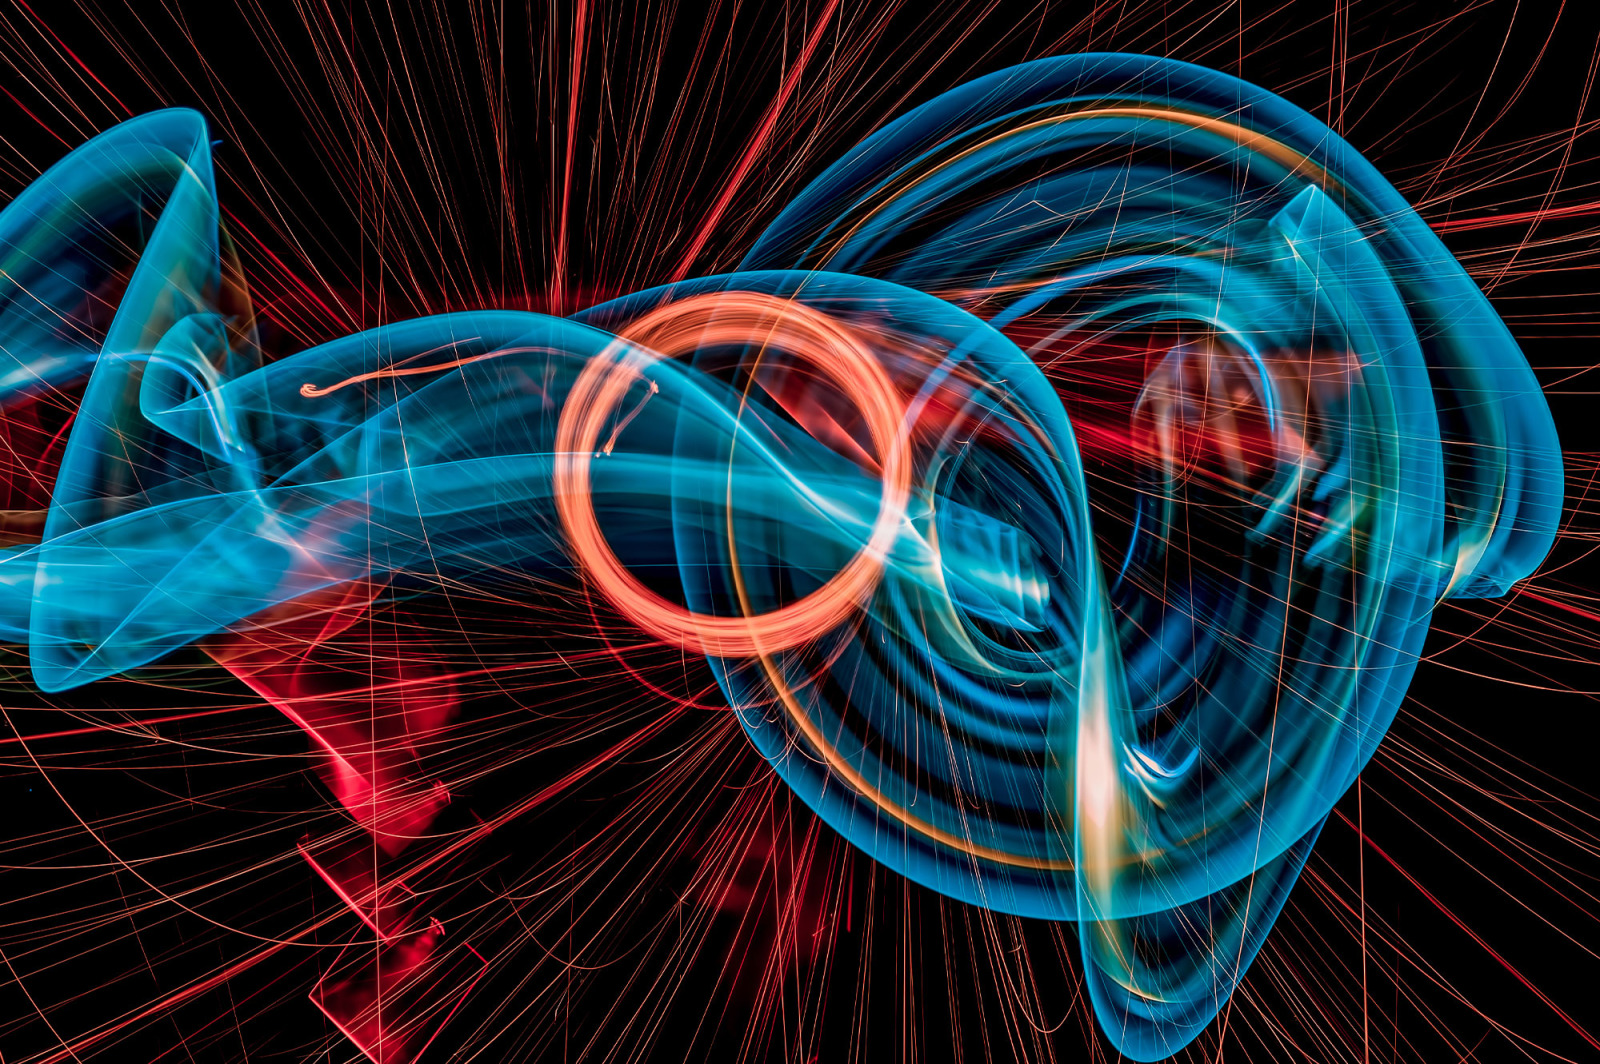 Ambient: Abstract Light Paintings